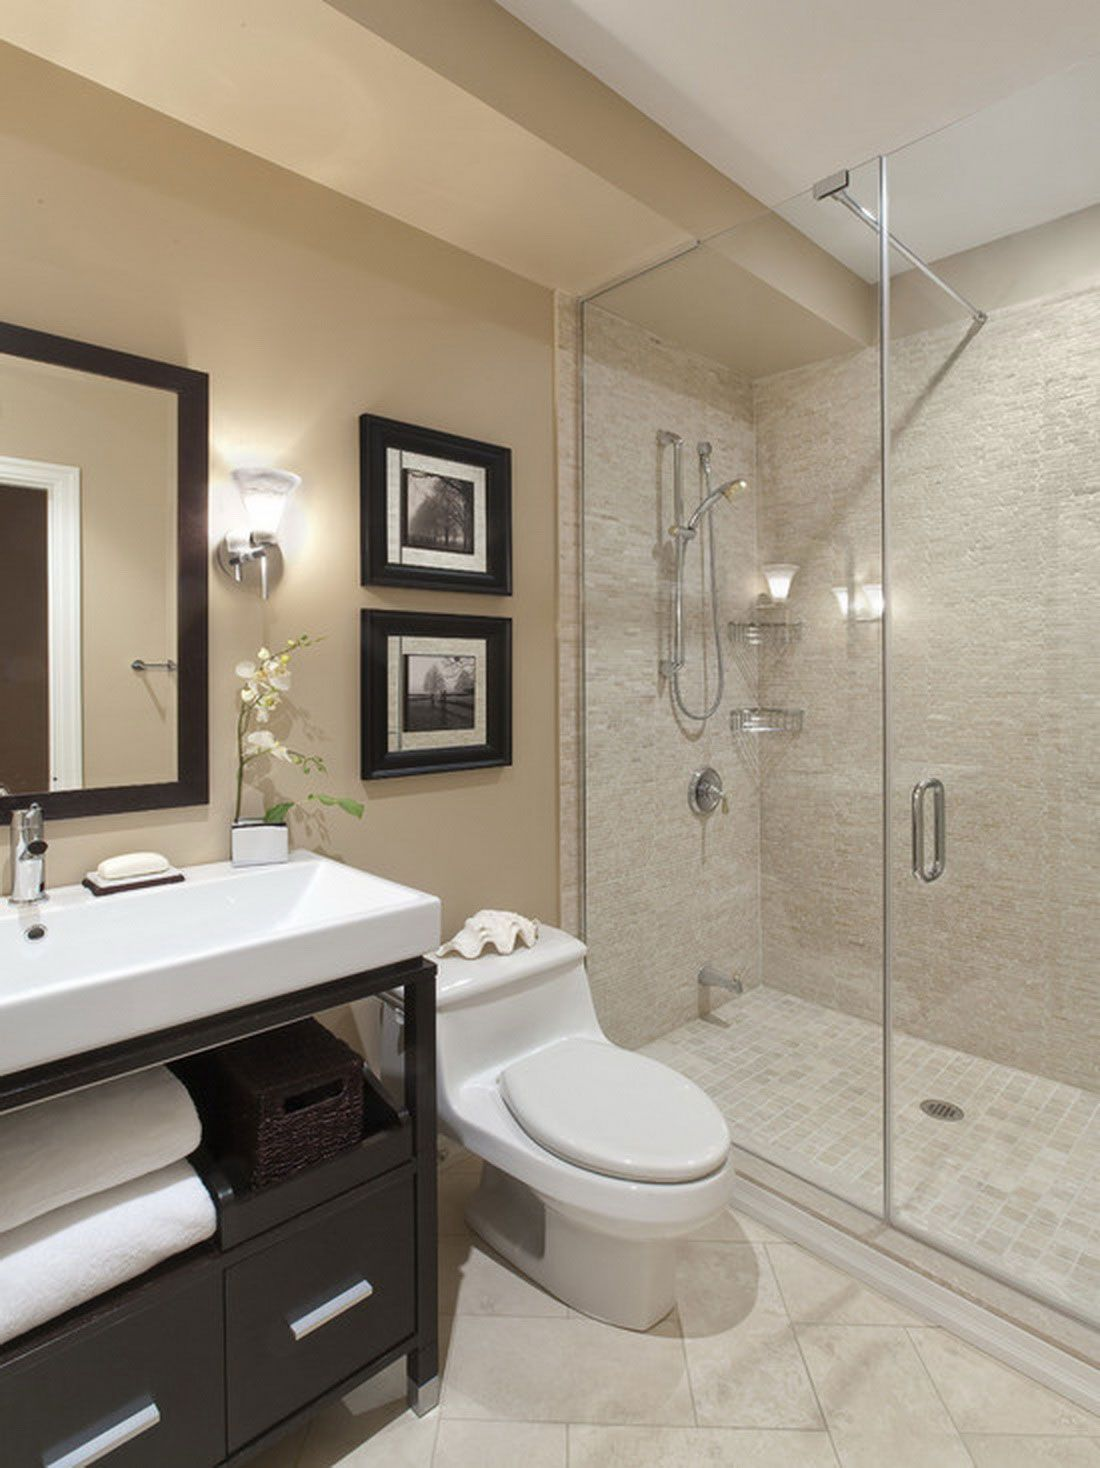 15 extraordinary transitional bathroom designs for any home - Bathroom Design Ideas Pictures